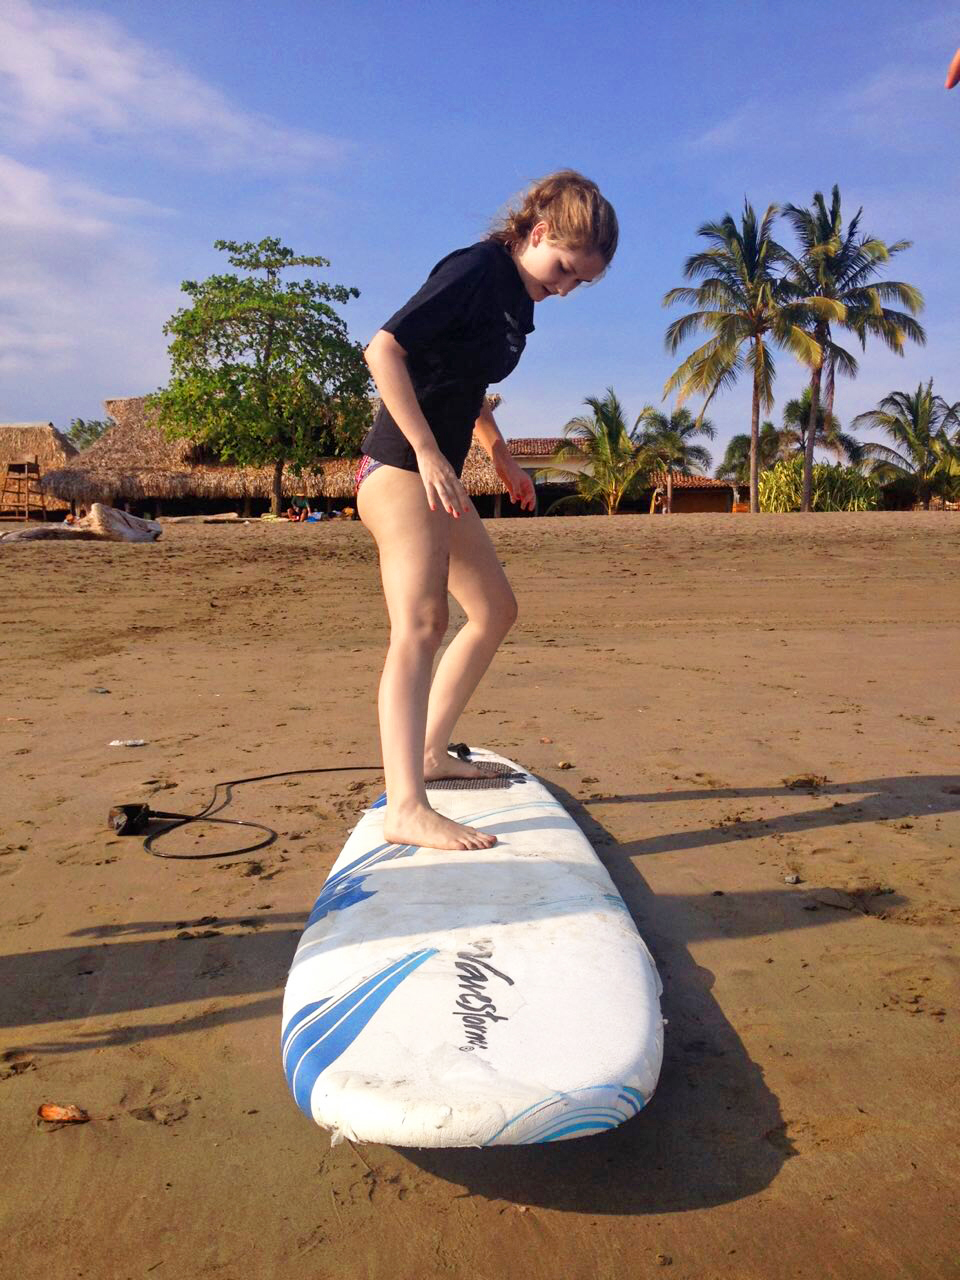 Surfing at Playa Venao